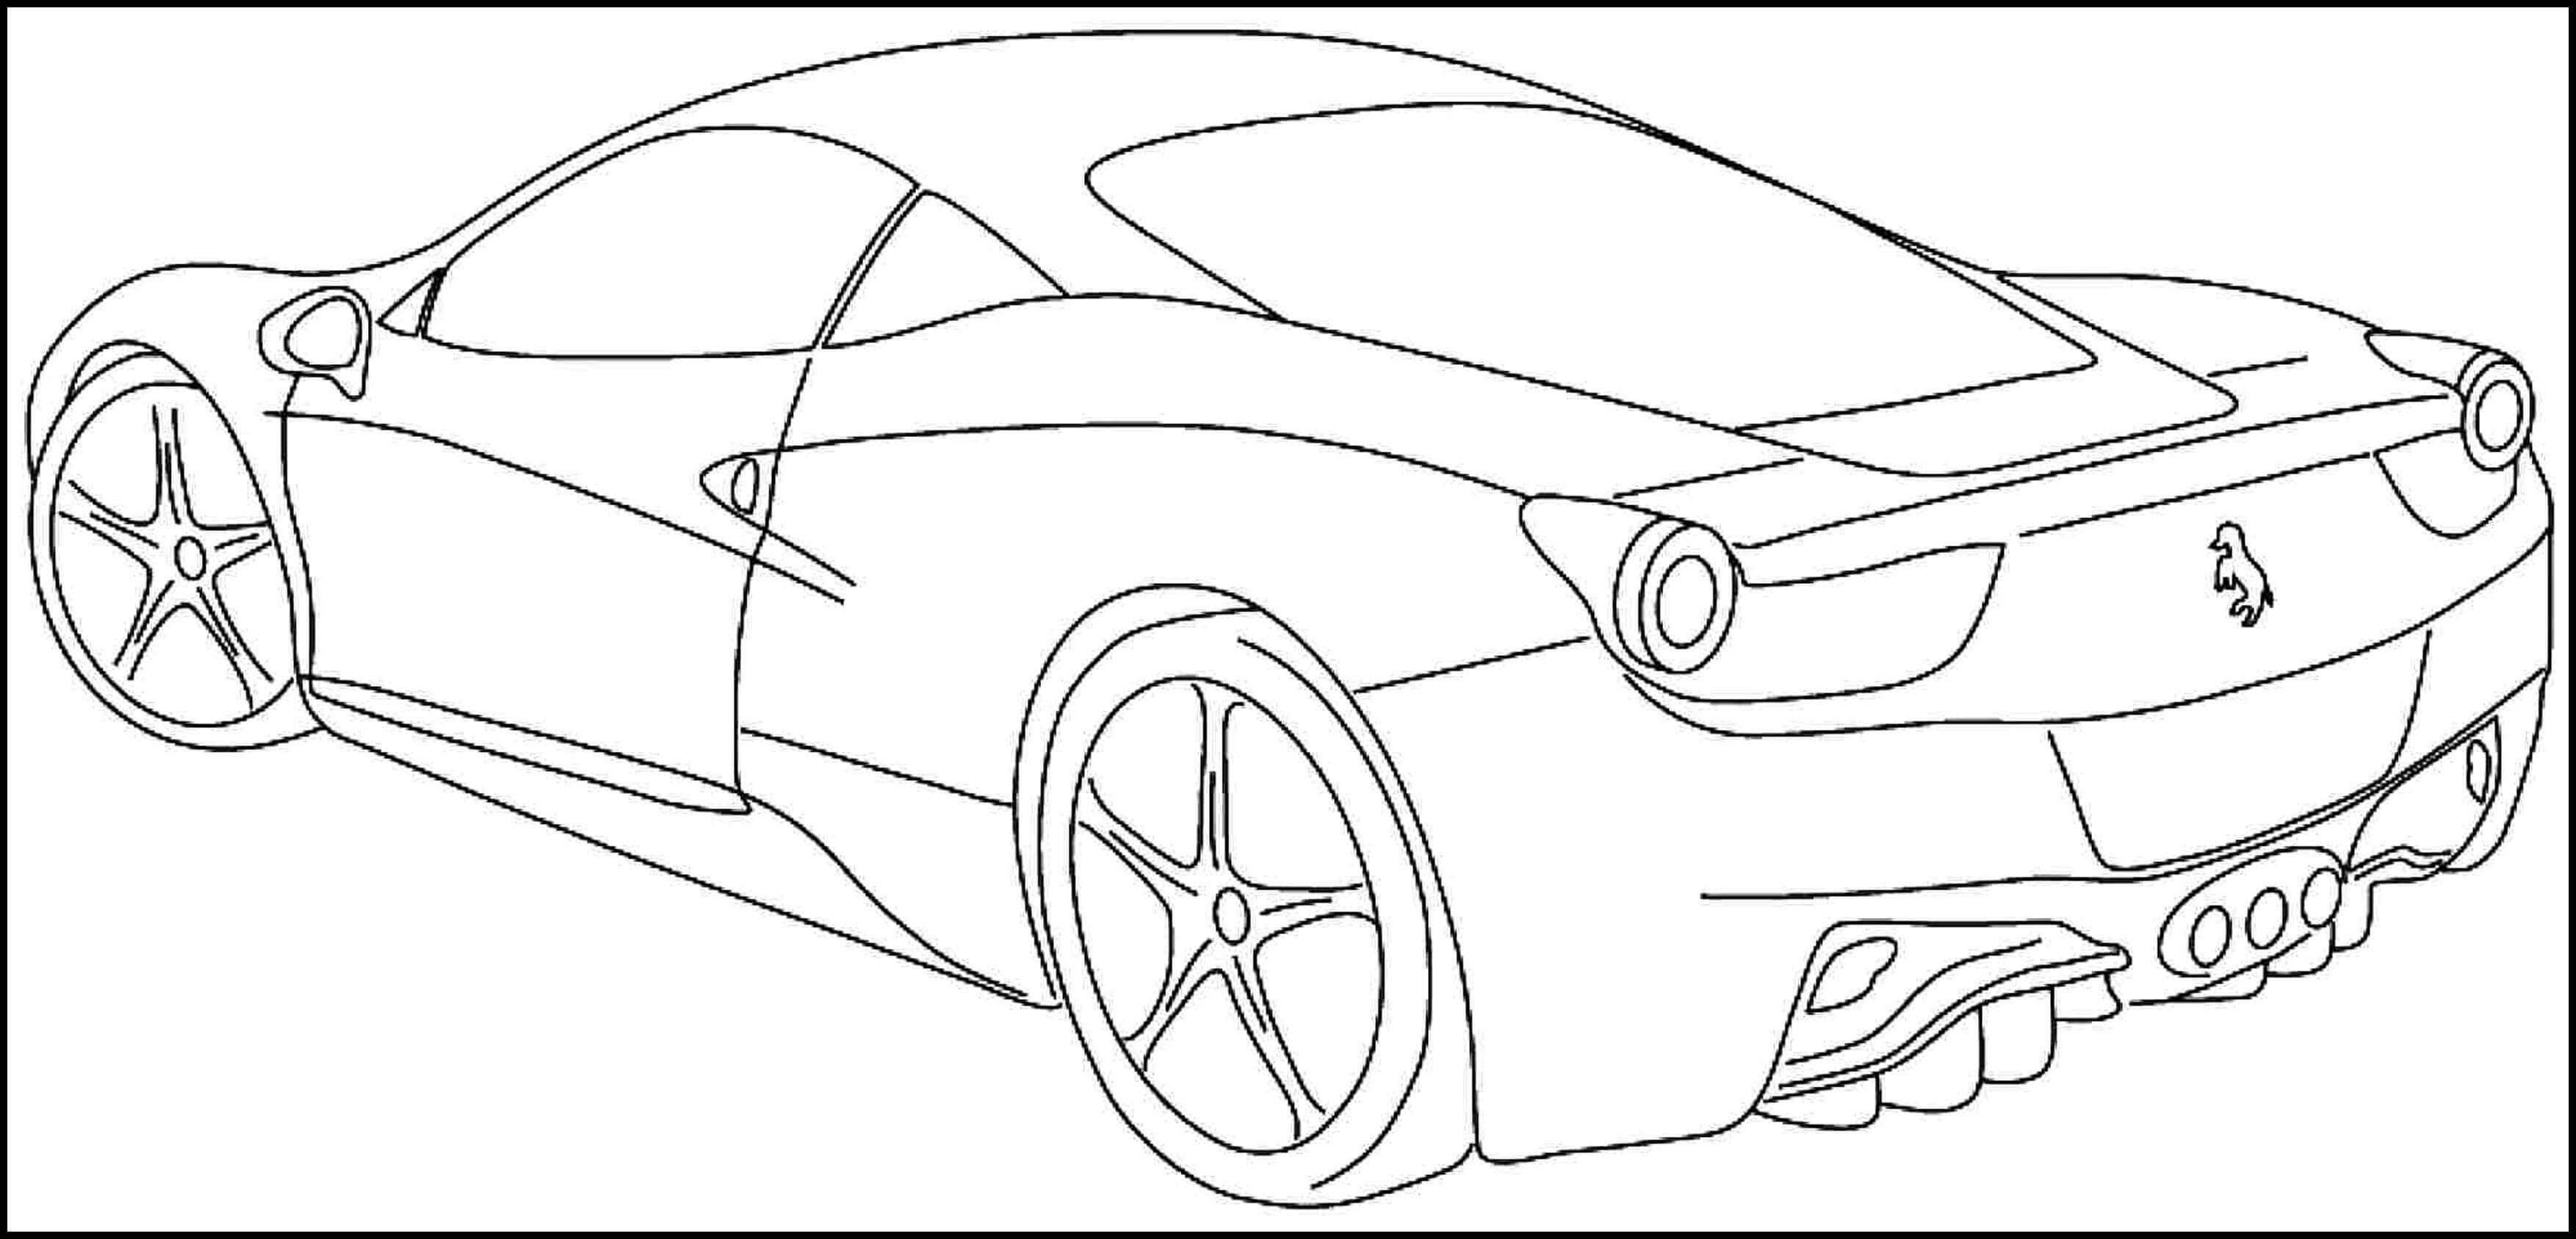 Dukes Of Hazzard Coloring Pages For Kids  Car dukes hazzard Coloring pages Print coloring